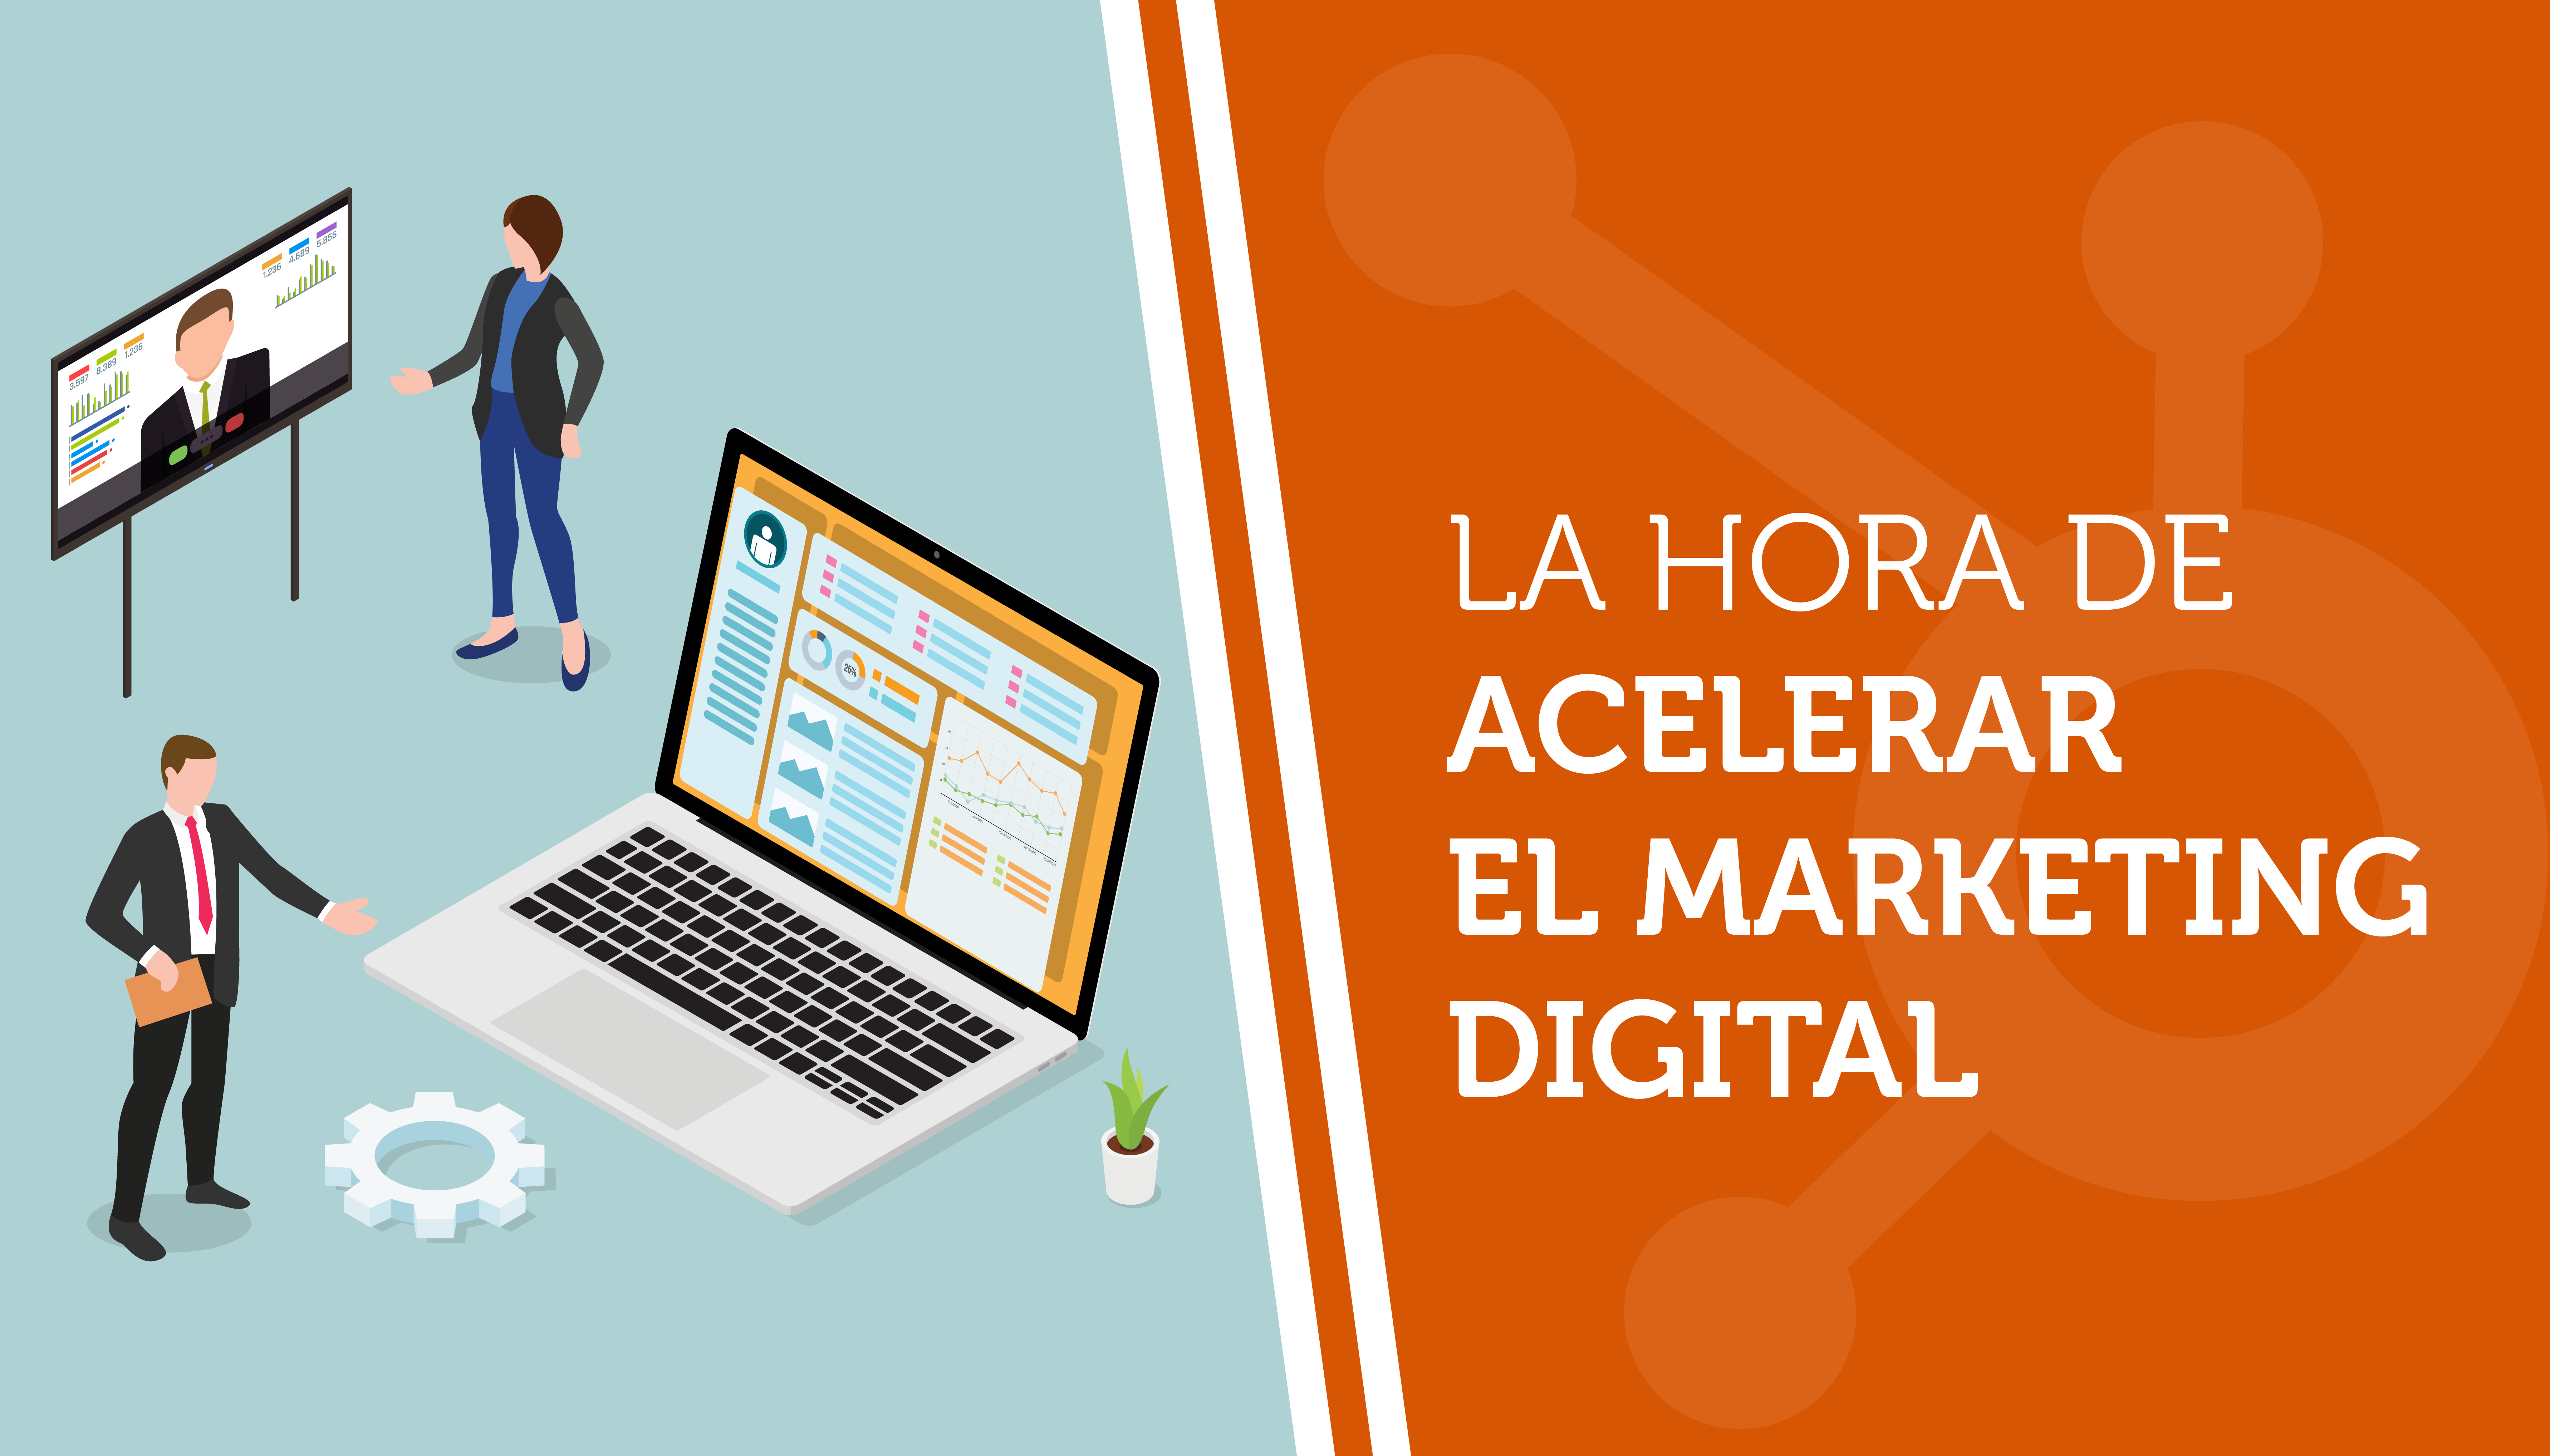 hora-de acelerar-el marketing-digital-